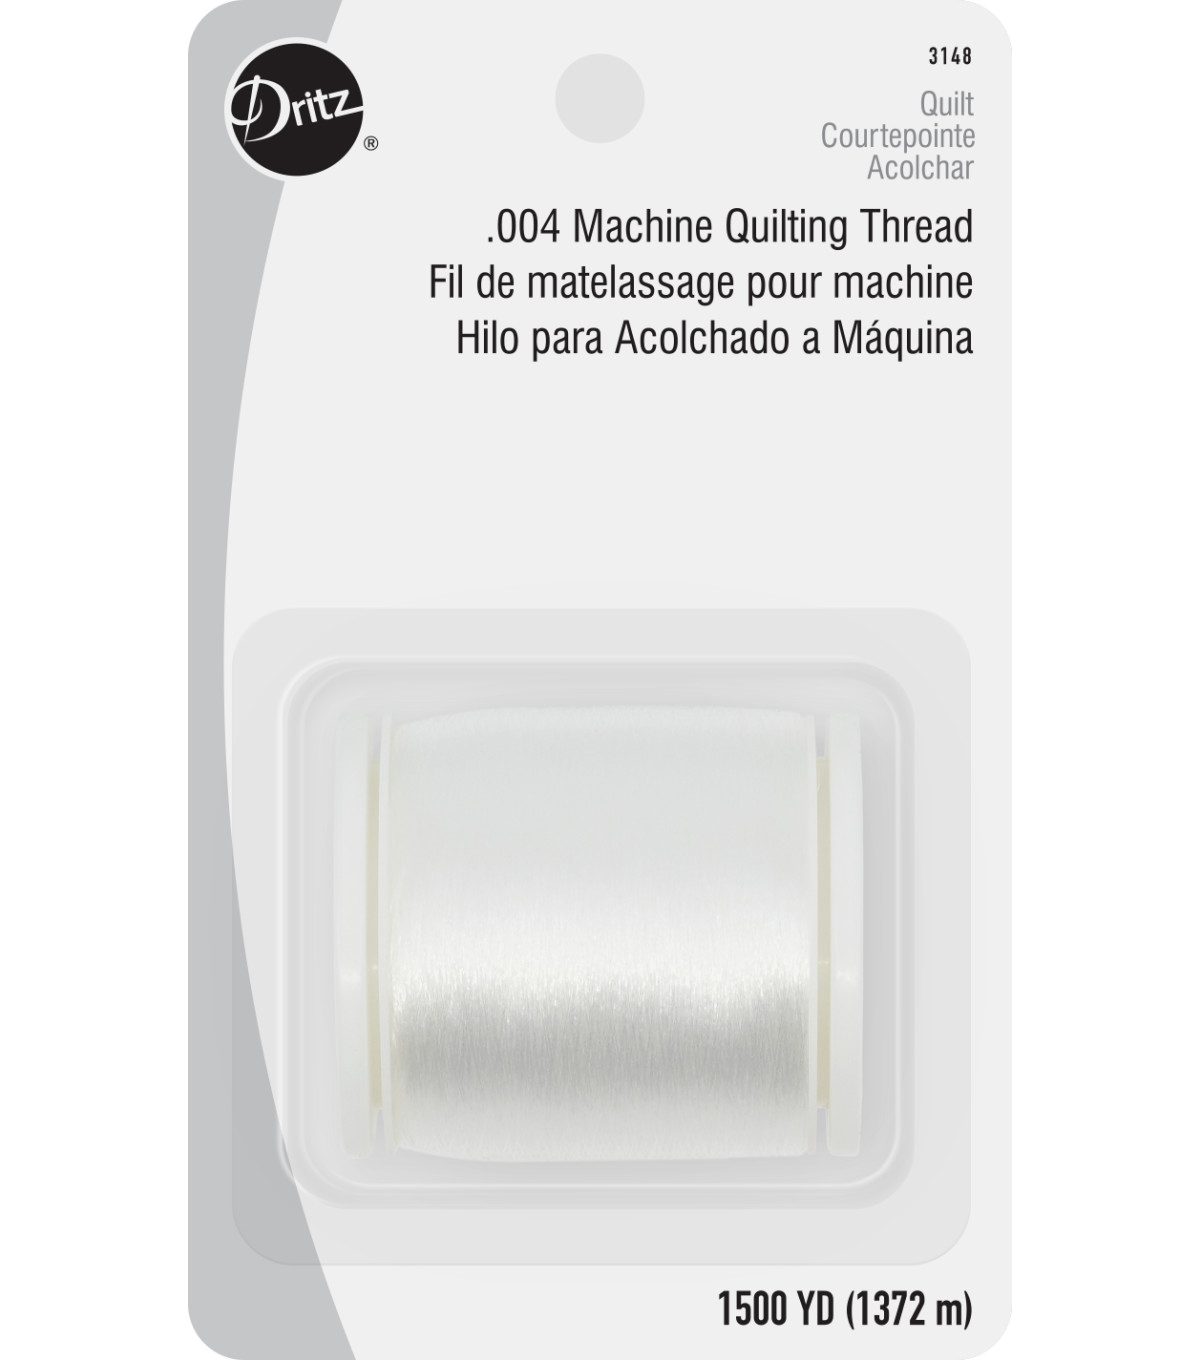 Dritz Quilting.004 Machine Quilting Thread